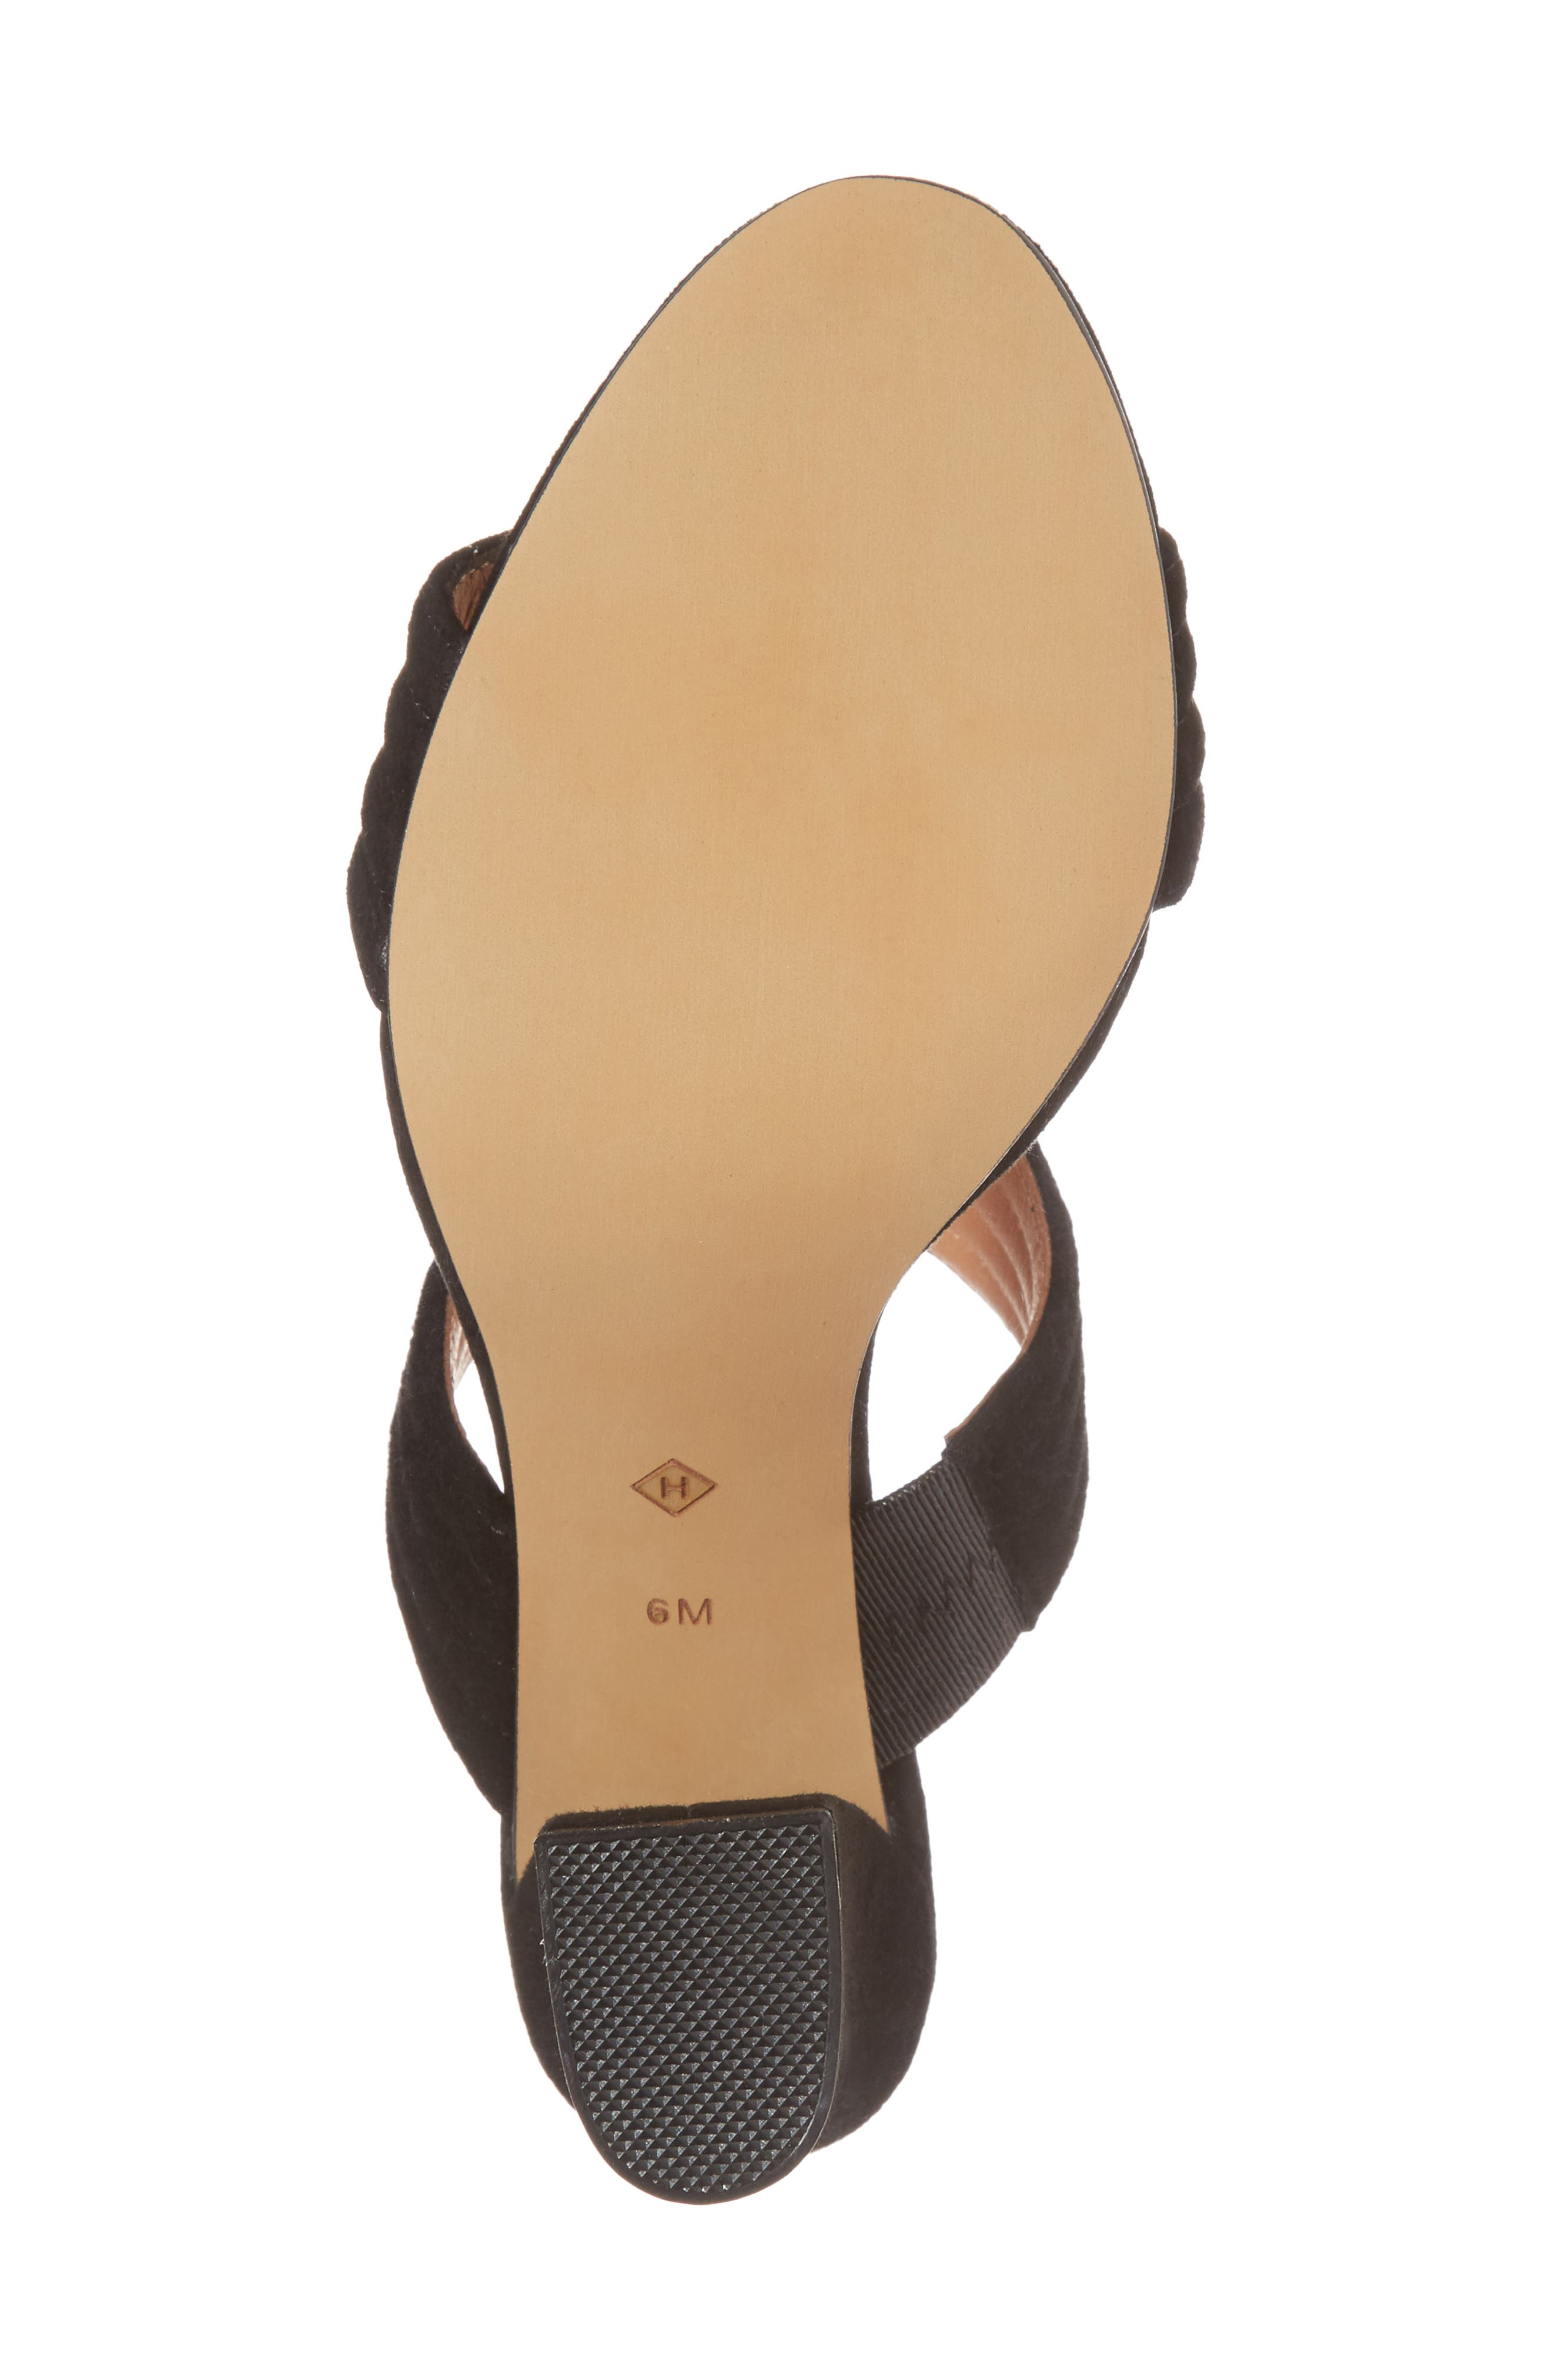 Della Slide Sandal,                             Alternate thumbnail 6, color,                             001